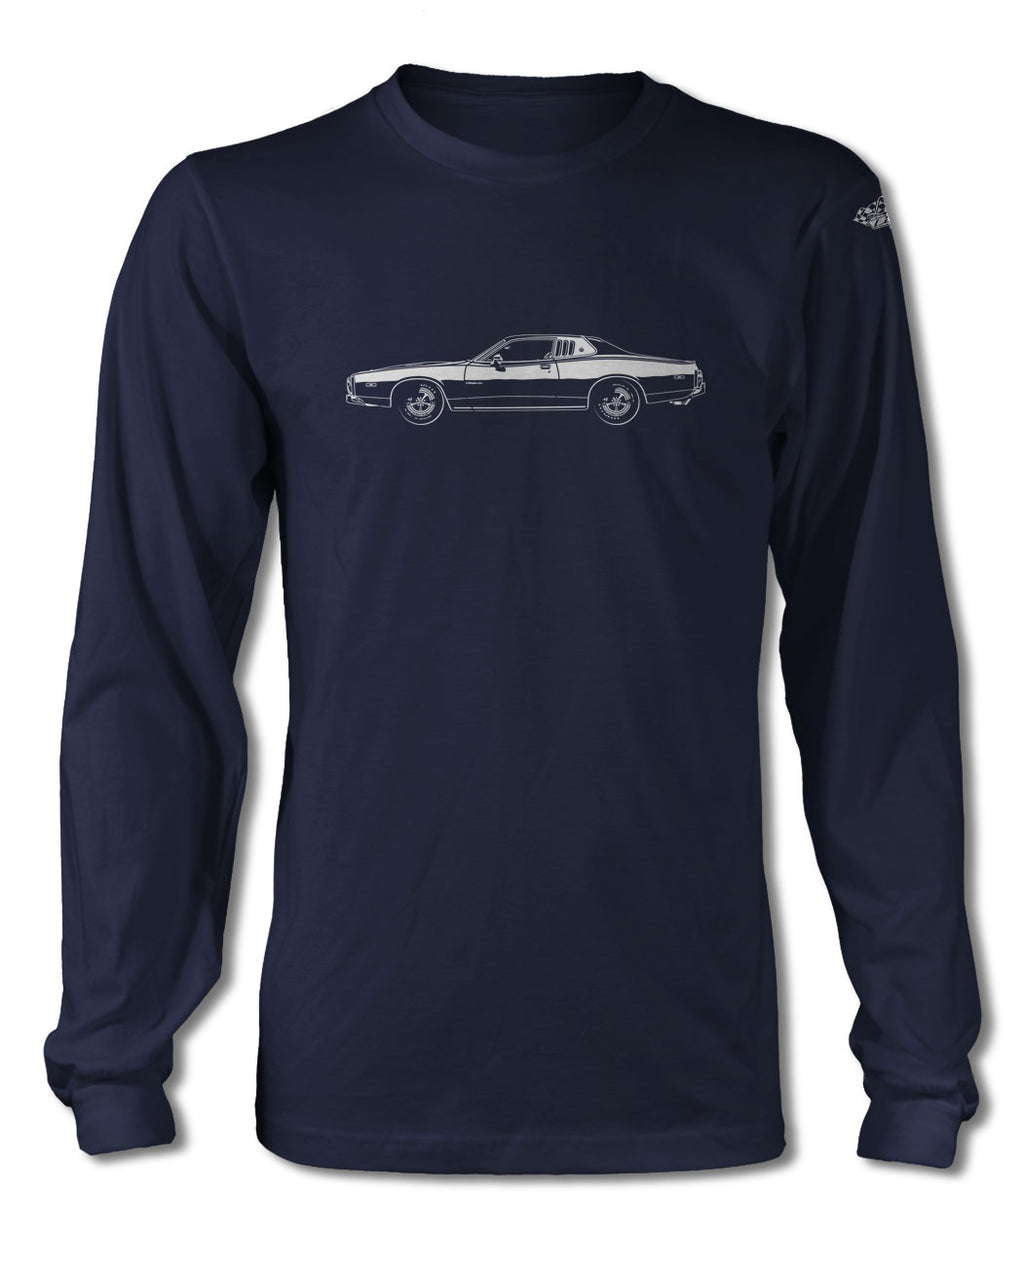 1973 Dodge Charger SE Hardtop T-Shirt - Long Sleeves - Side View